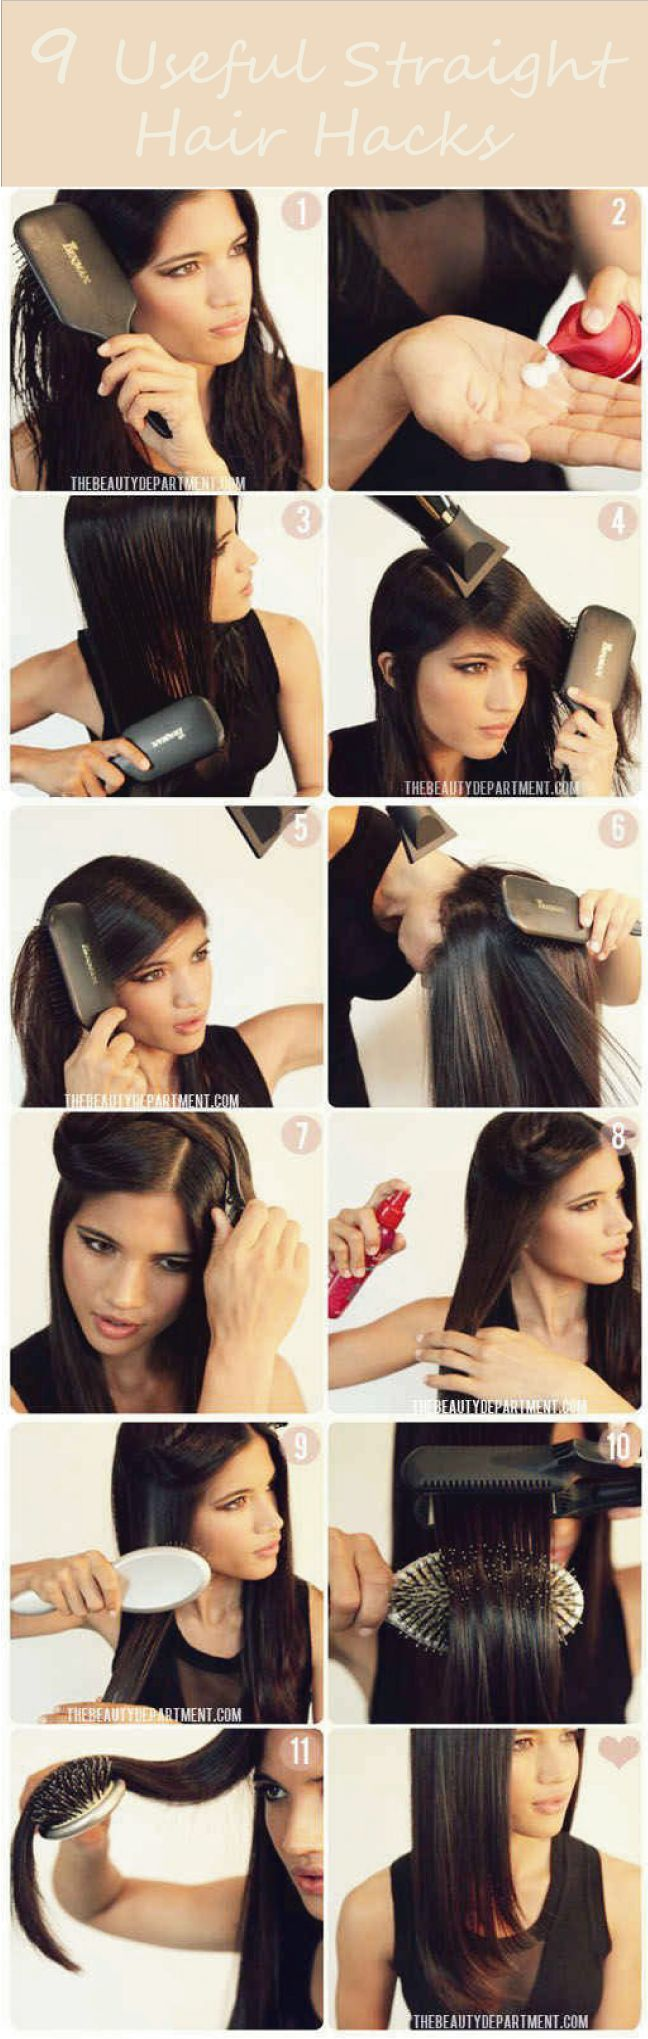 Having nice and straight hair? Need tips and tricks, here we come with a 9 useful straight hair hacks for you. Click to learn more and care for your hair. Rise and shine, babe!